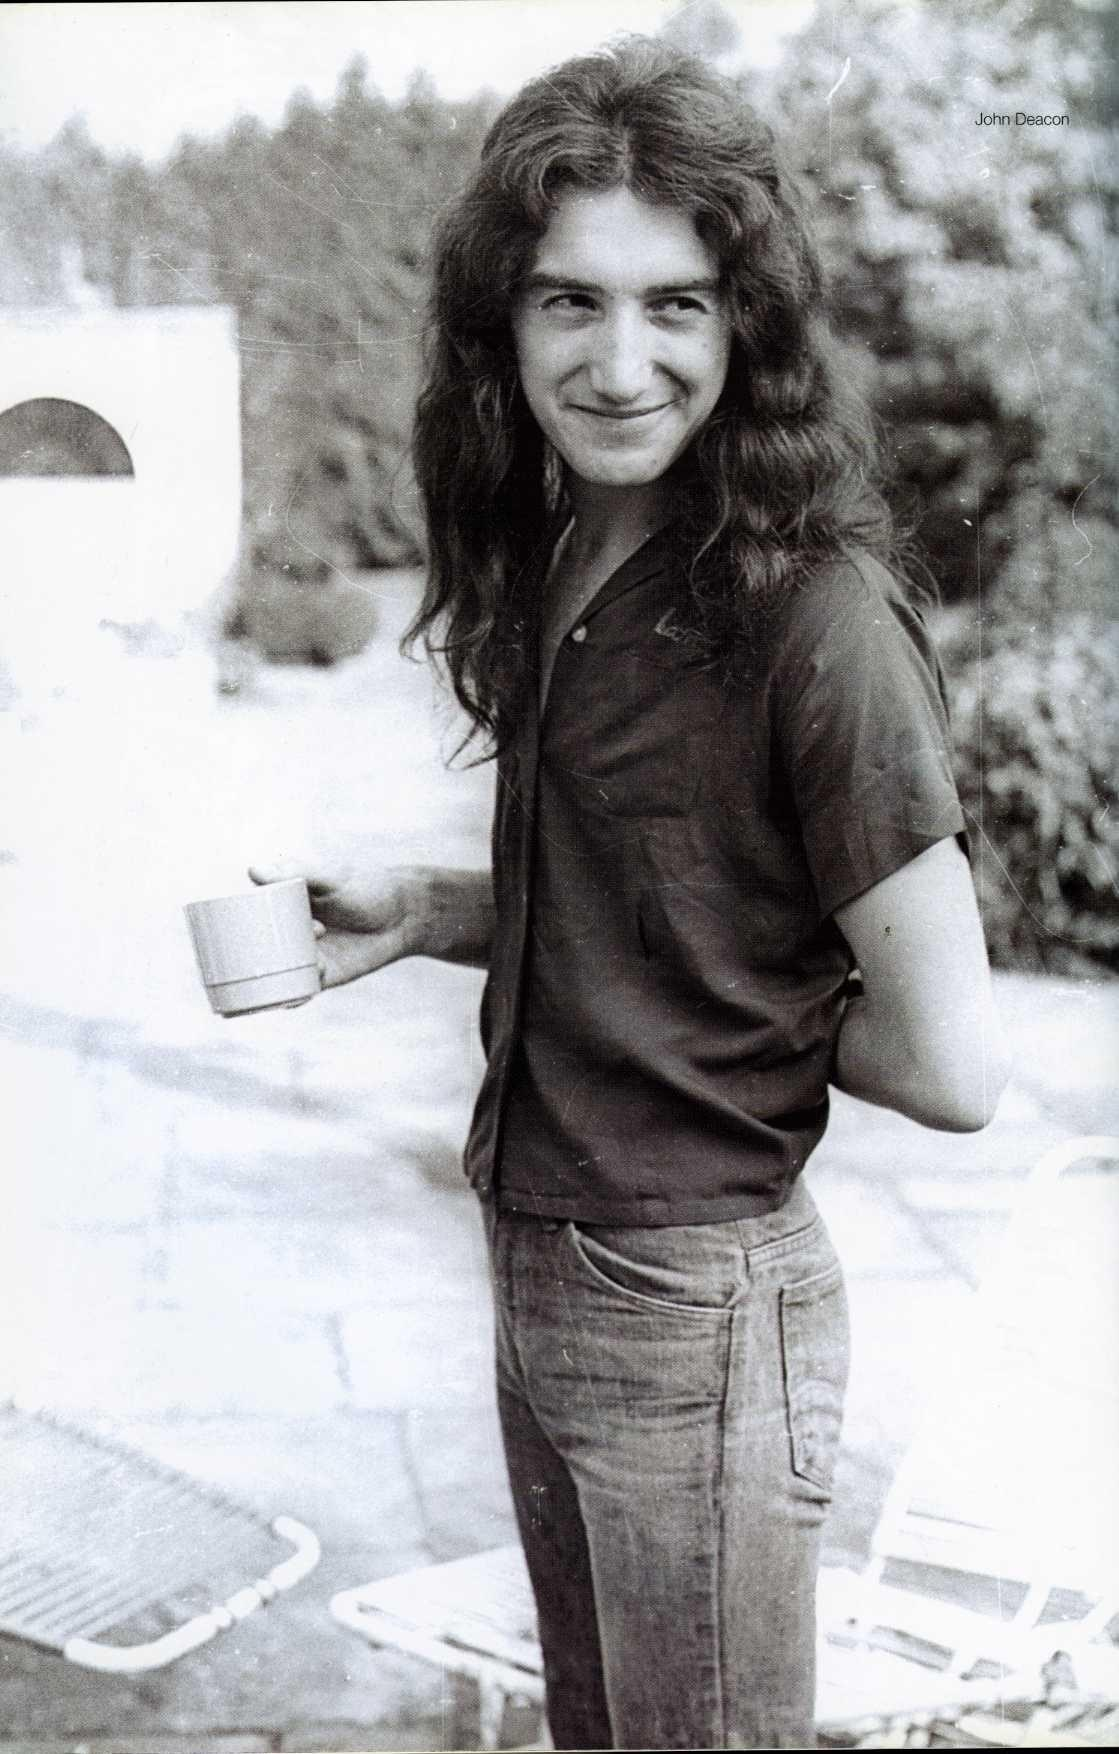 John Deacon | Known people - famous people news and ...